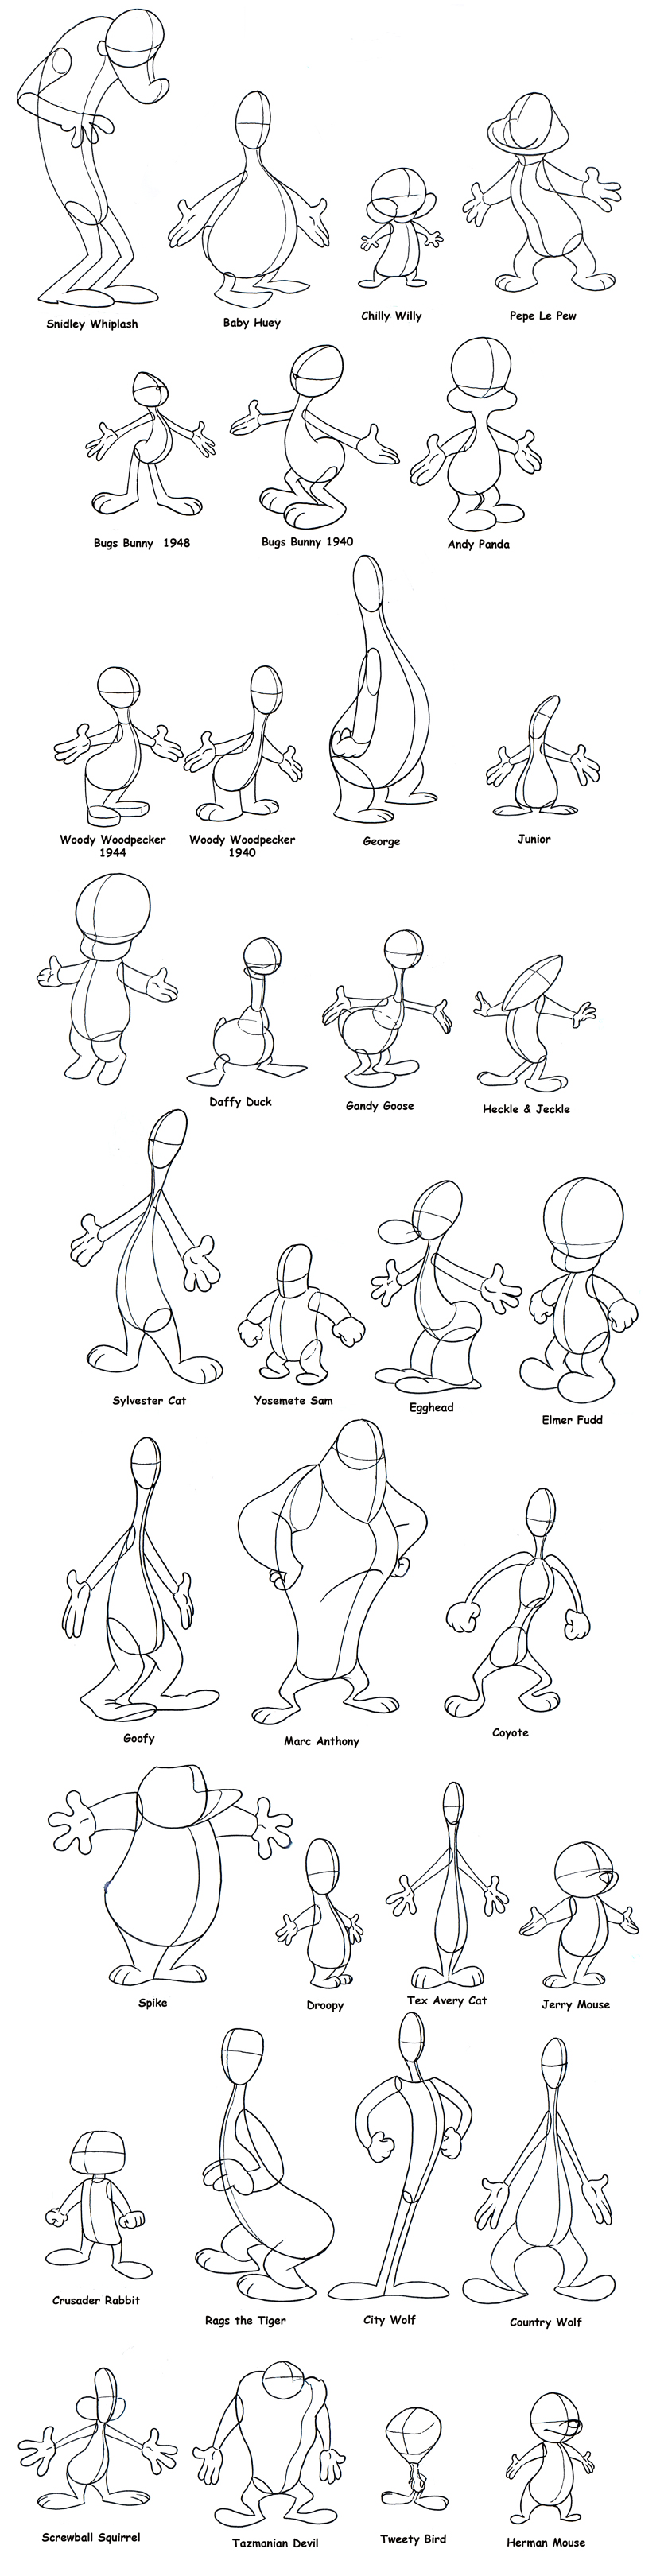 Character Design Body : Lip sync and character animation